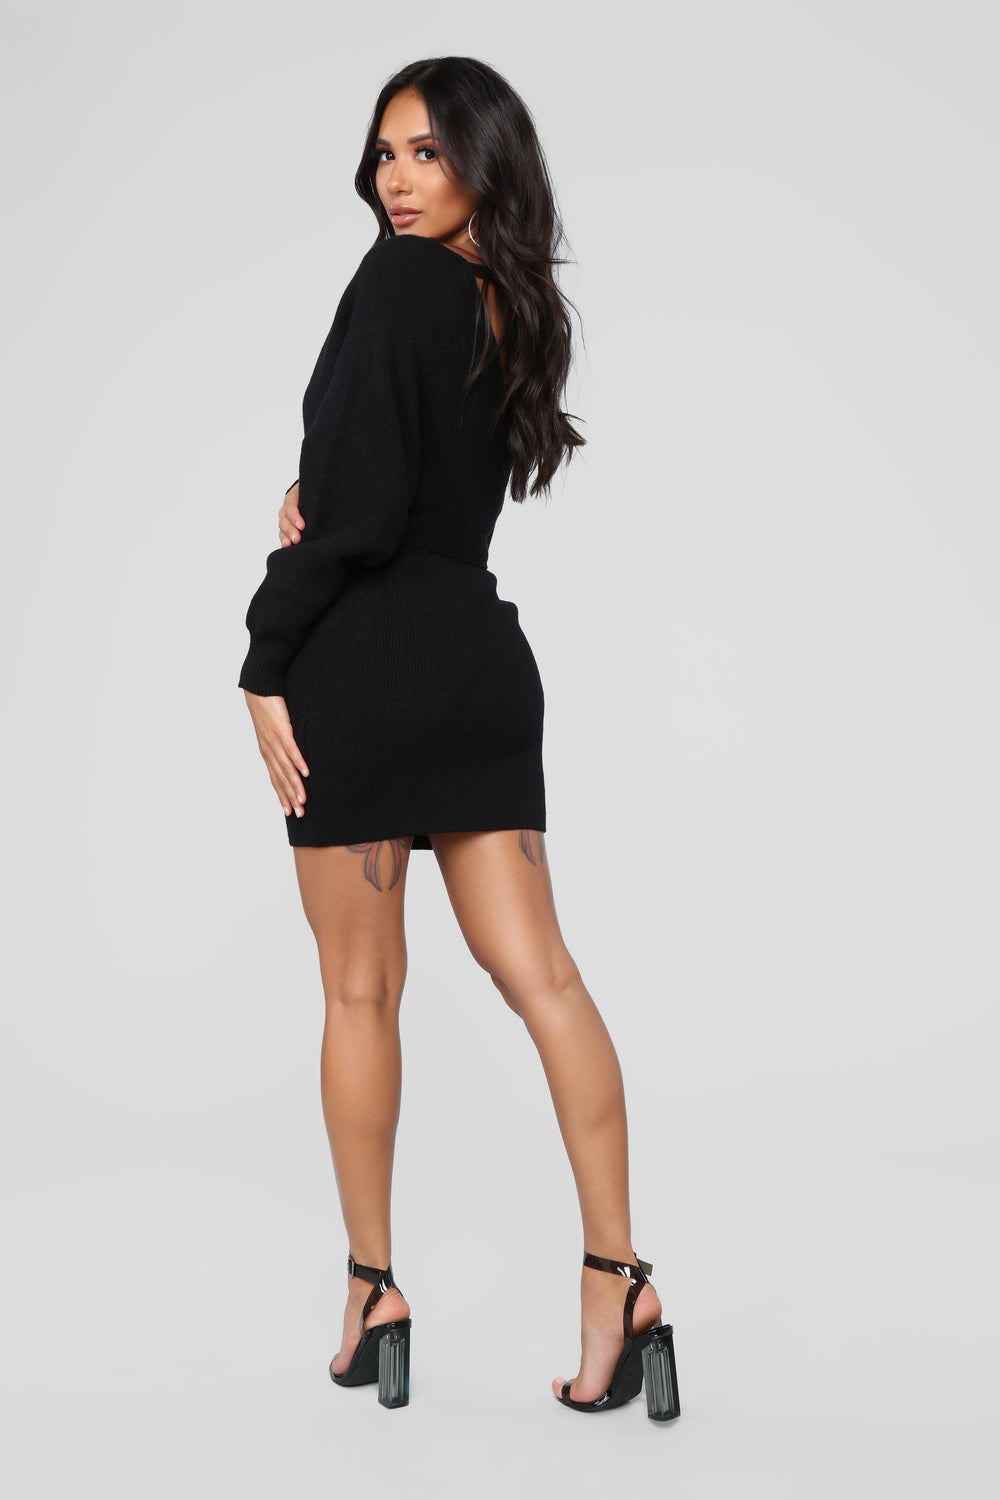 Hangin' With The Girls Dress - Black